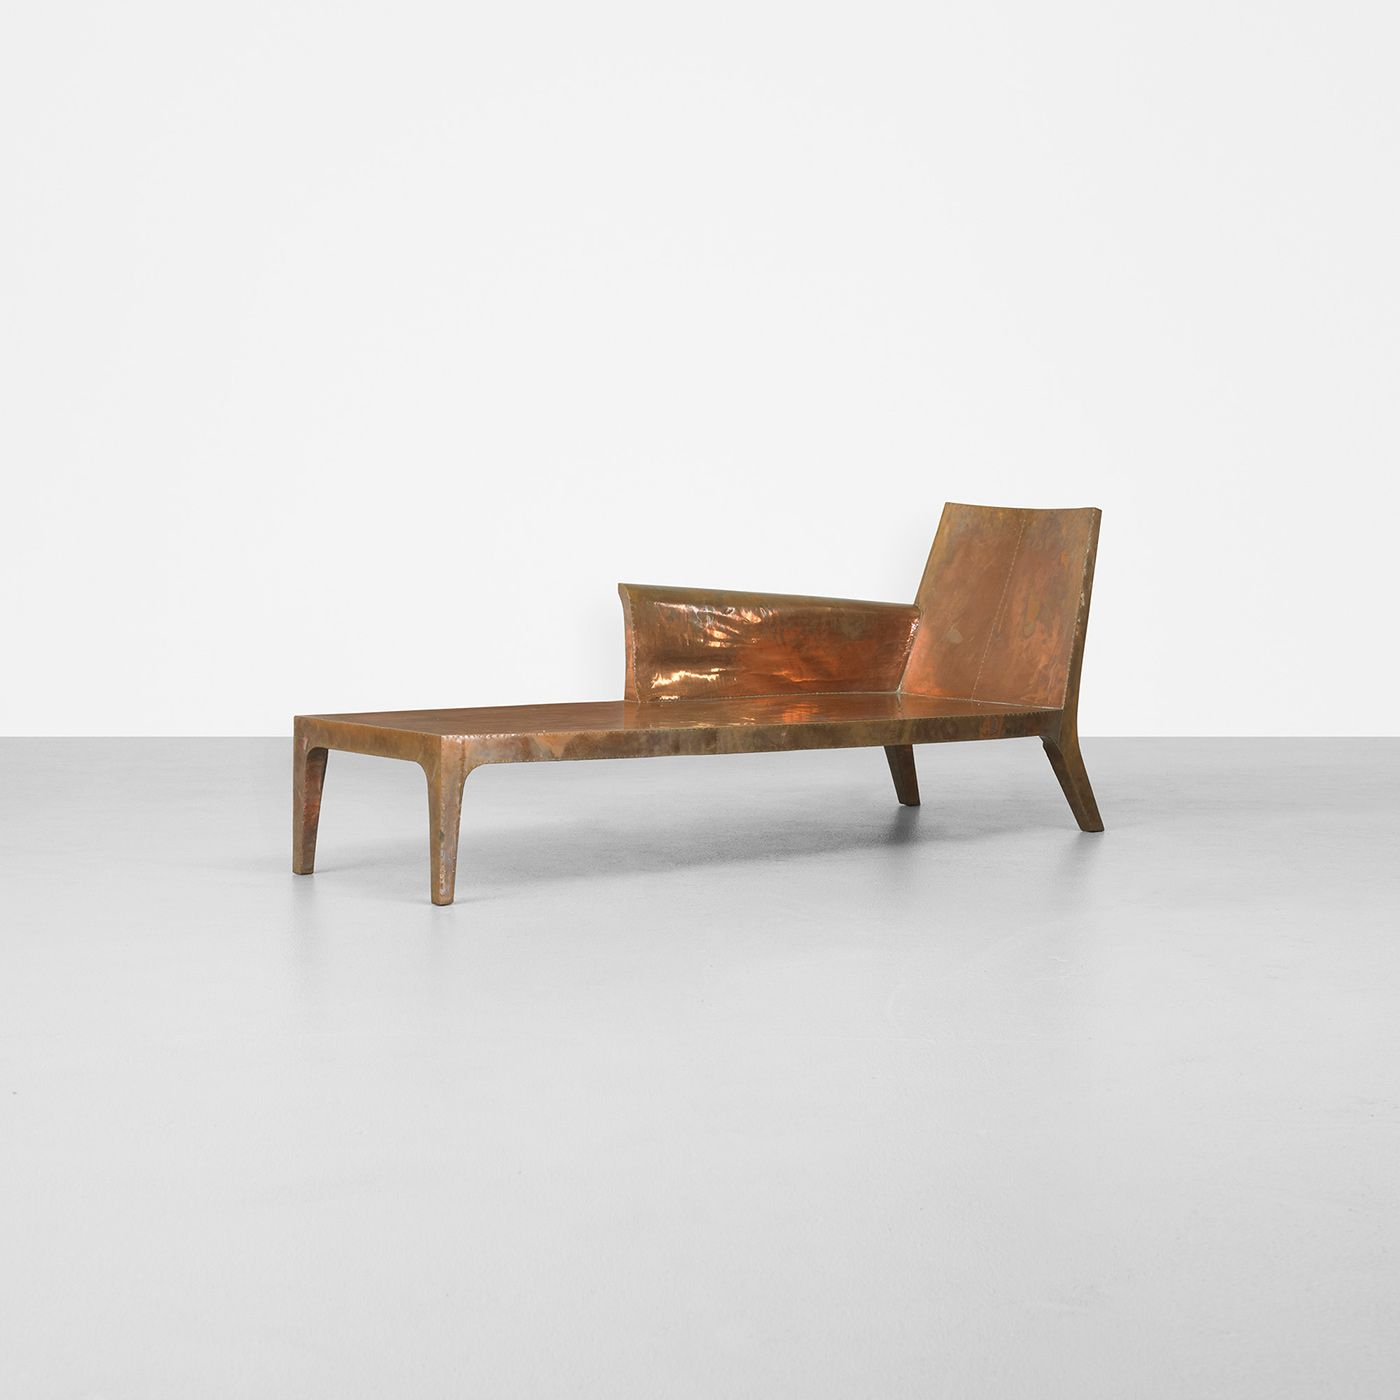 134: Paul Mathieu / chaise lounge < Living Contemporary, 27 September 2012 < Auctions | Wright